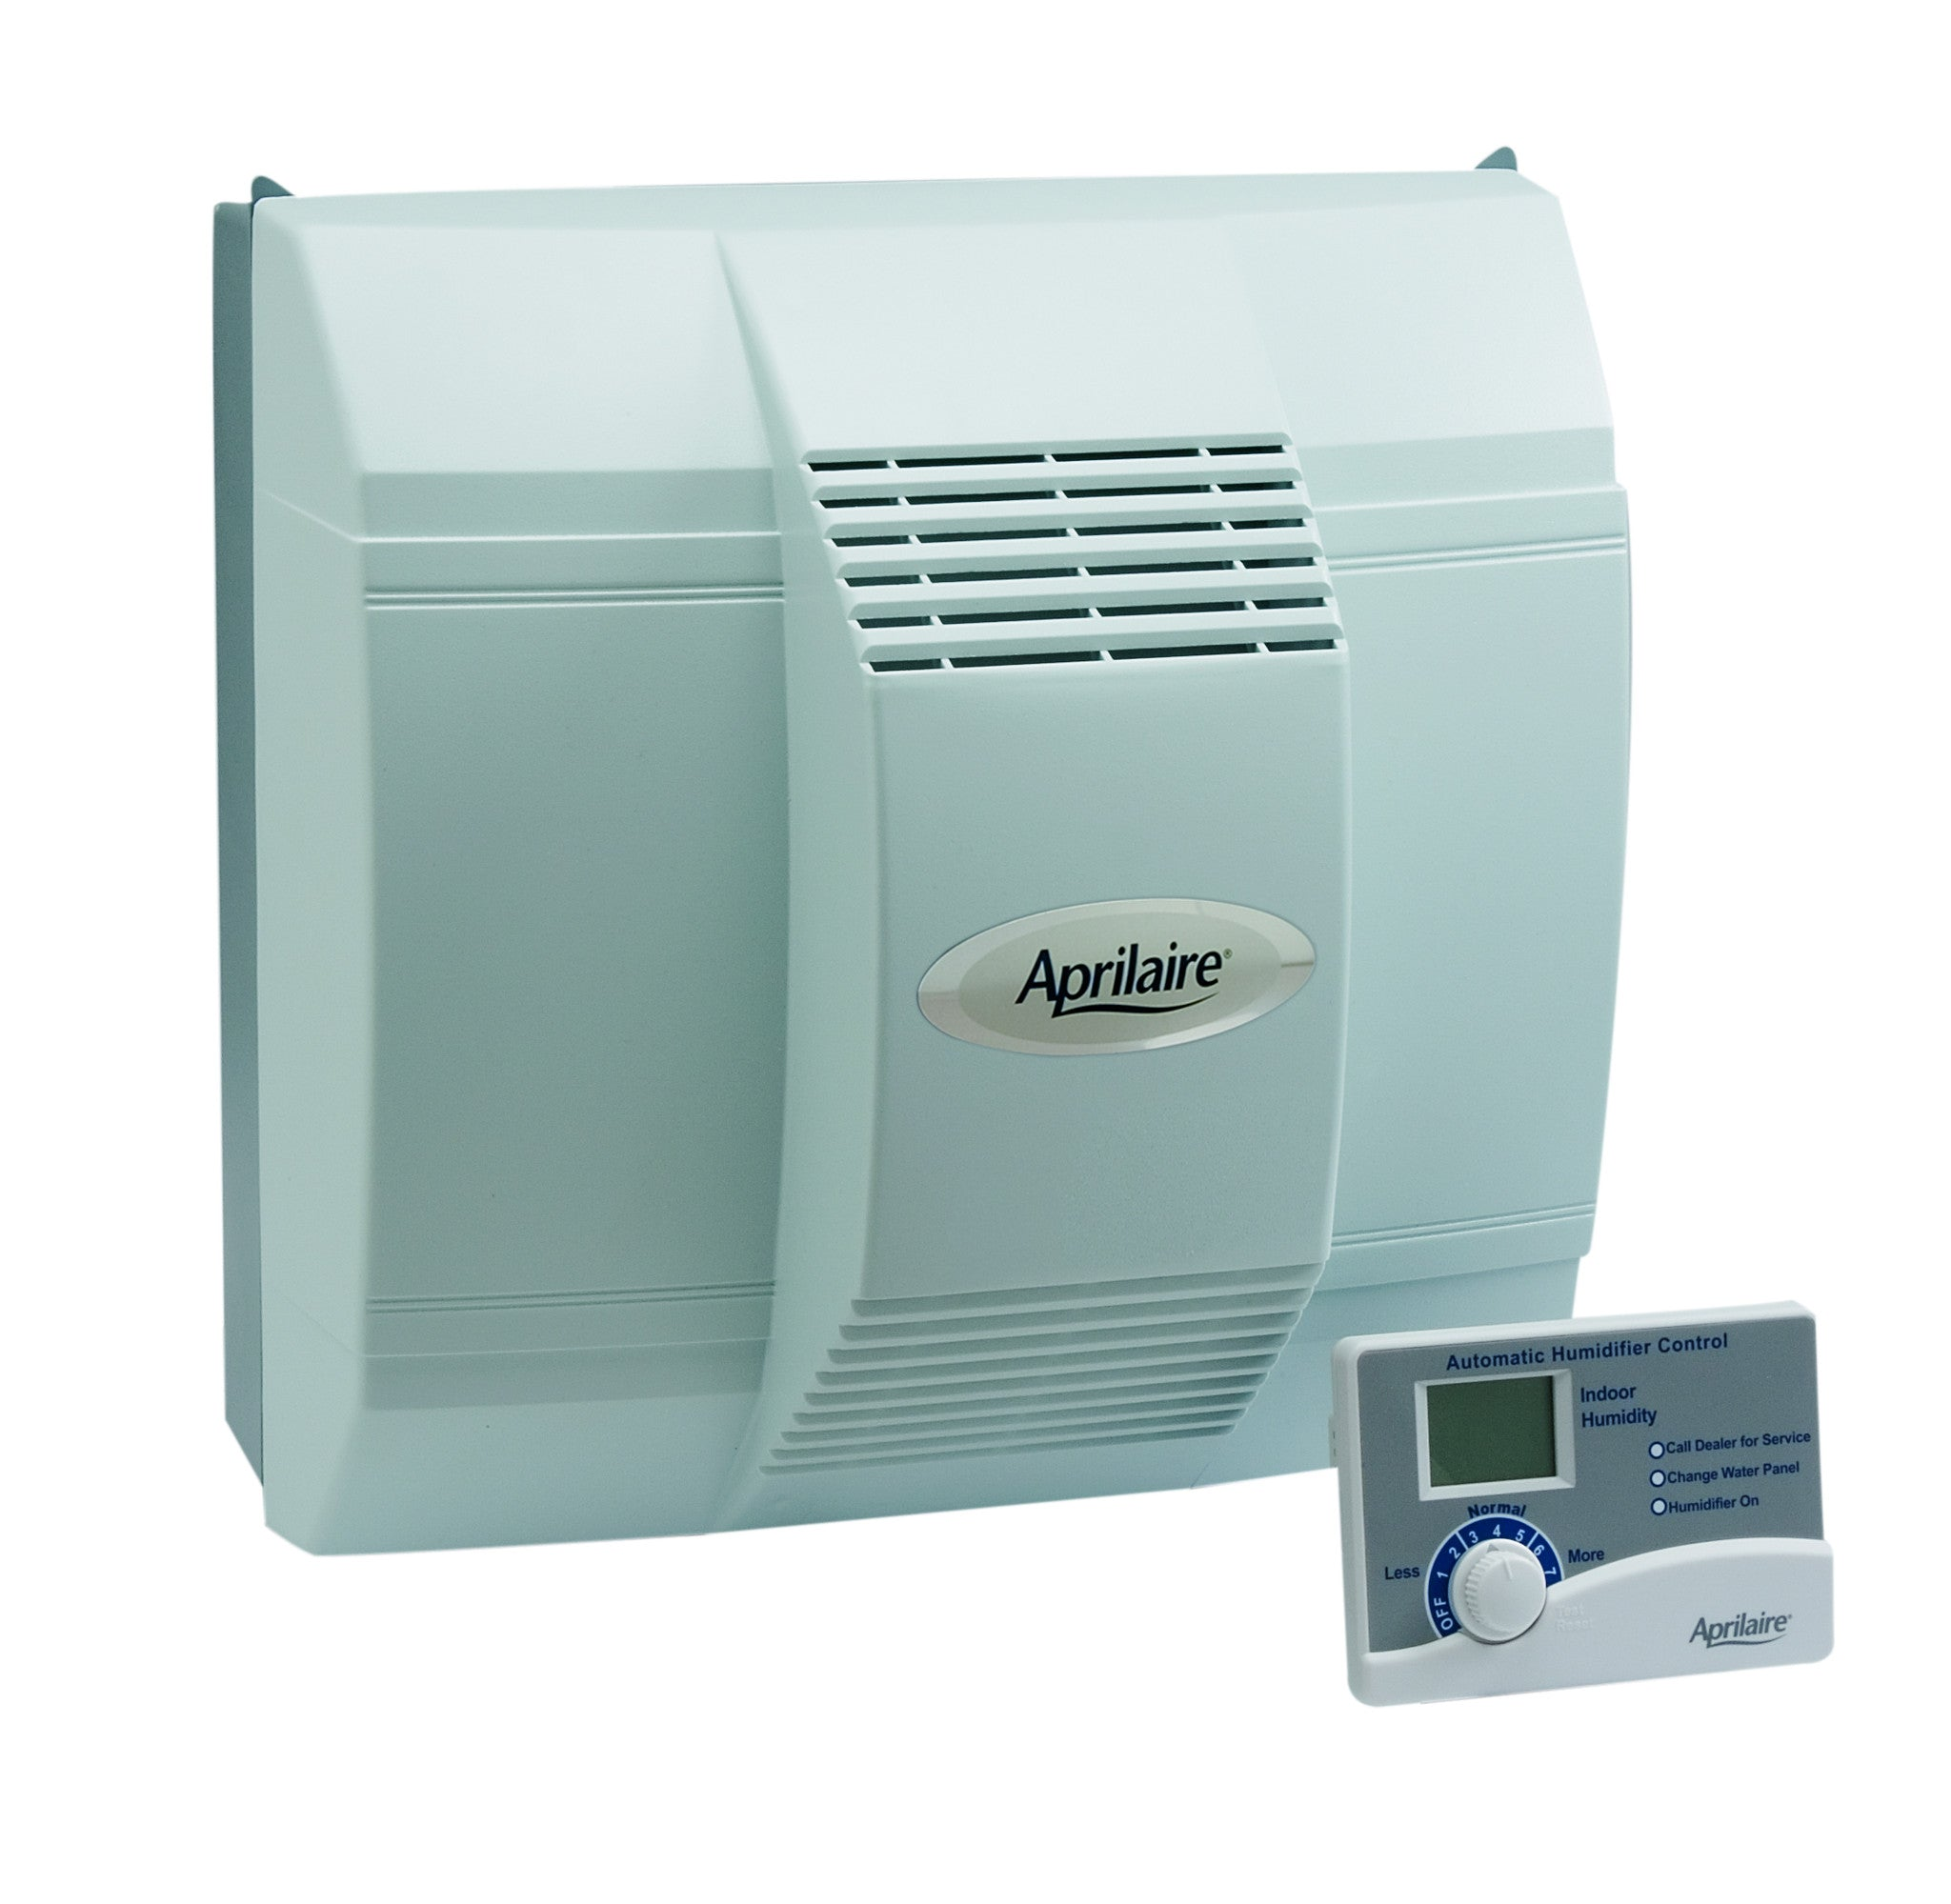 GeneralAire 5720 900A Elite Automatic Bypass Humidifier 17 GPD